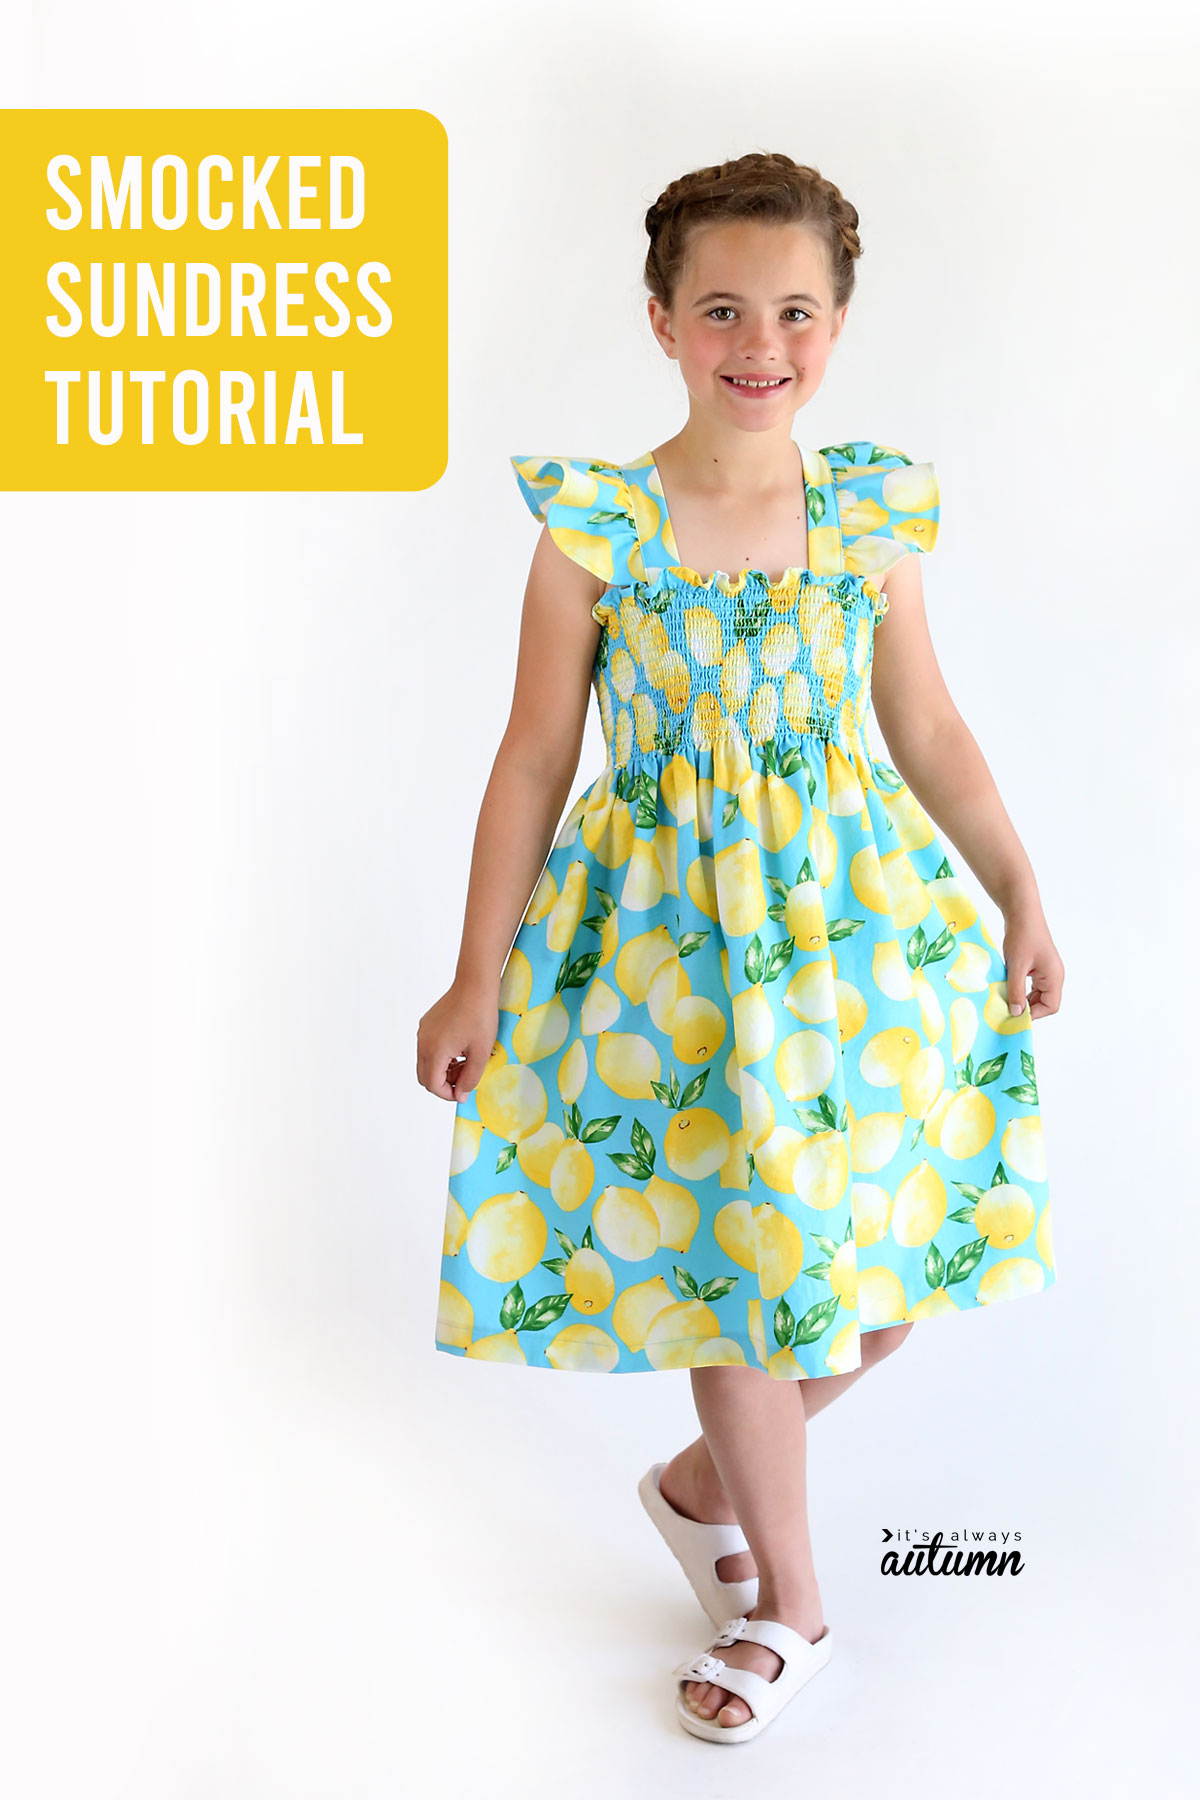 How to make a cute sundress using pre-smocked fabric